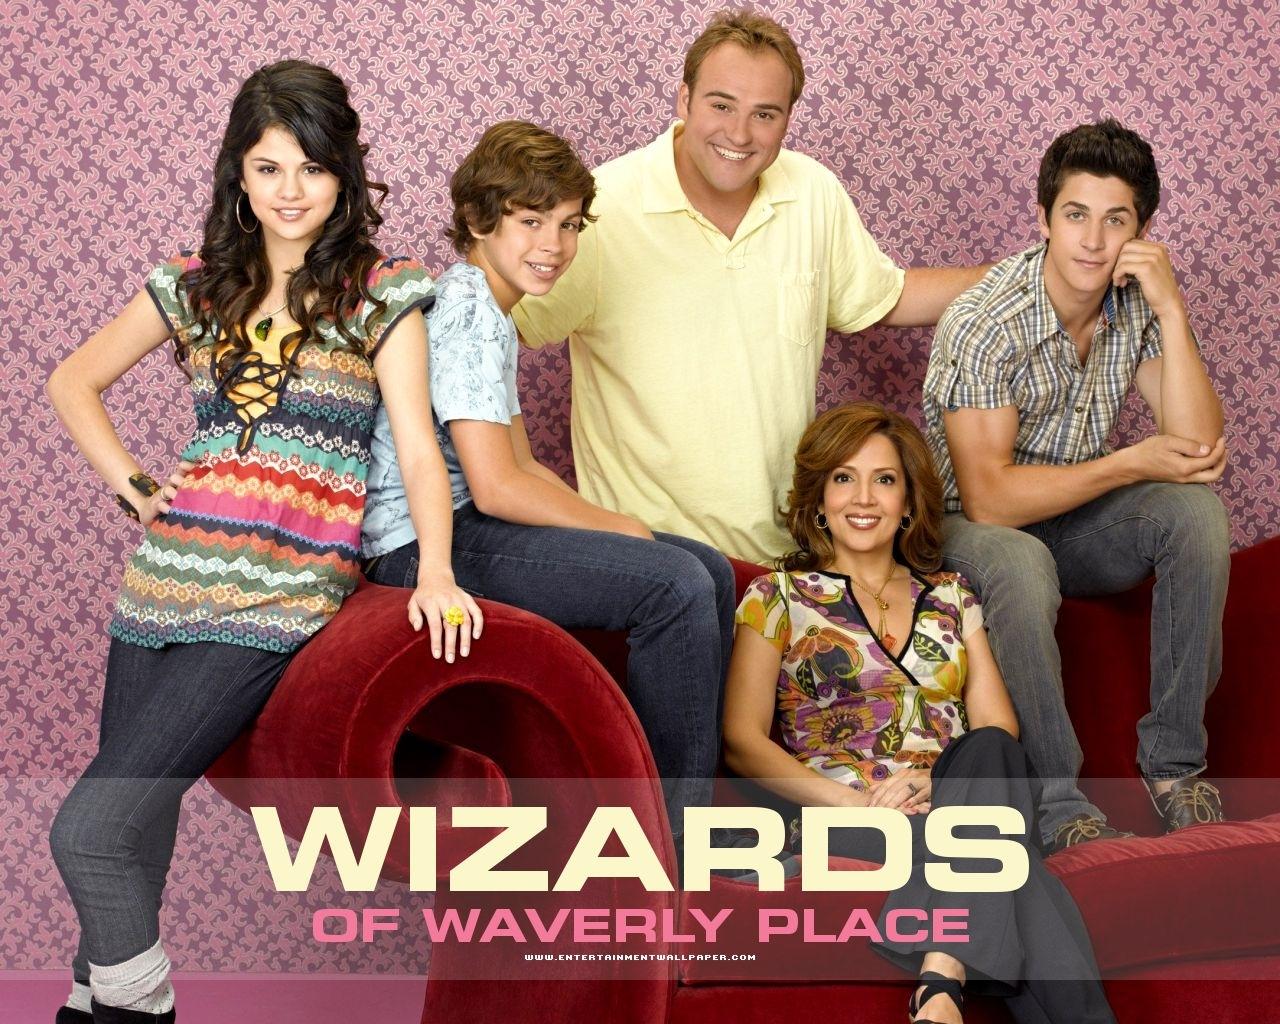 Wowp wizards of waverly place 4249643 1280 1024 jpg